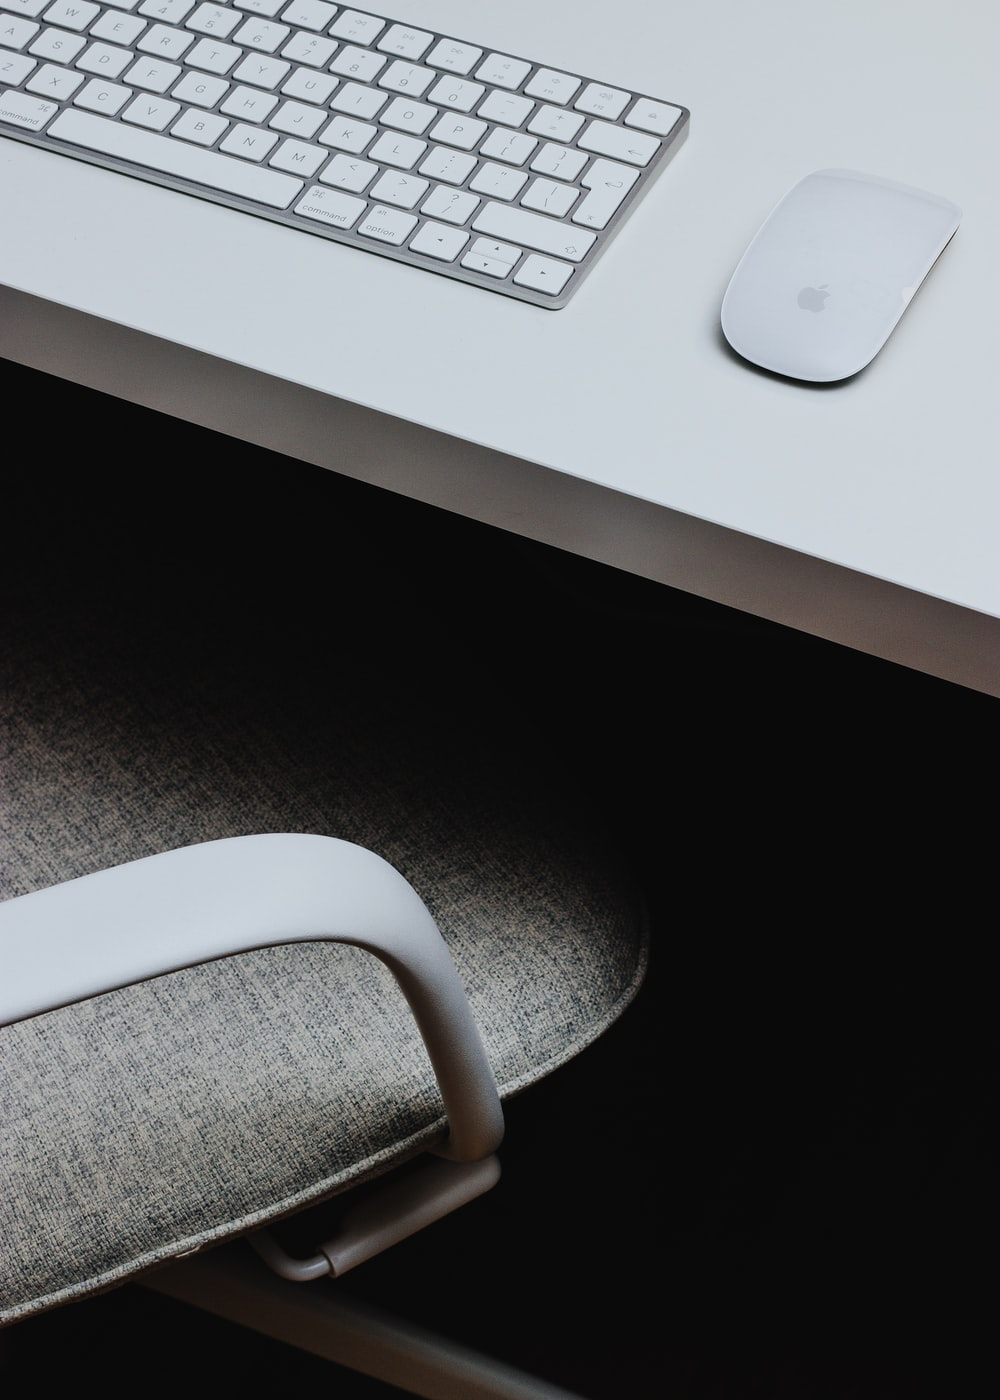 Magic Mouse and Magic Keyboard on table